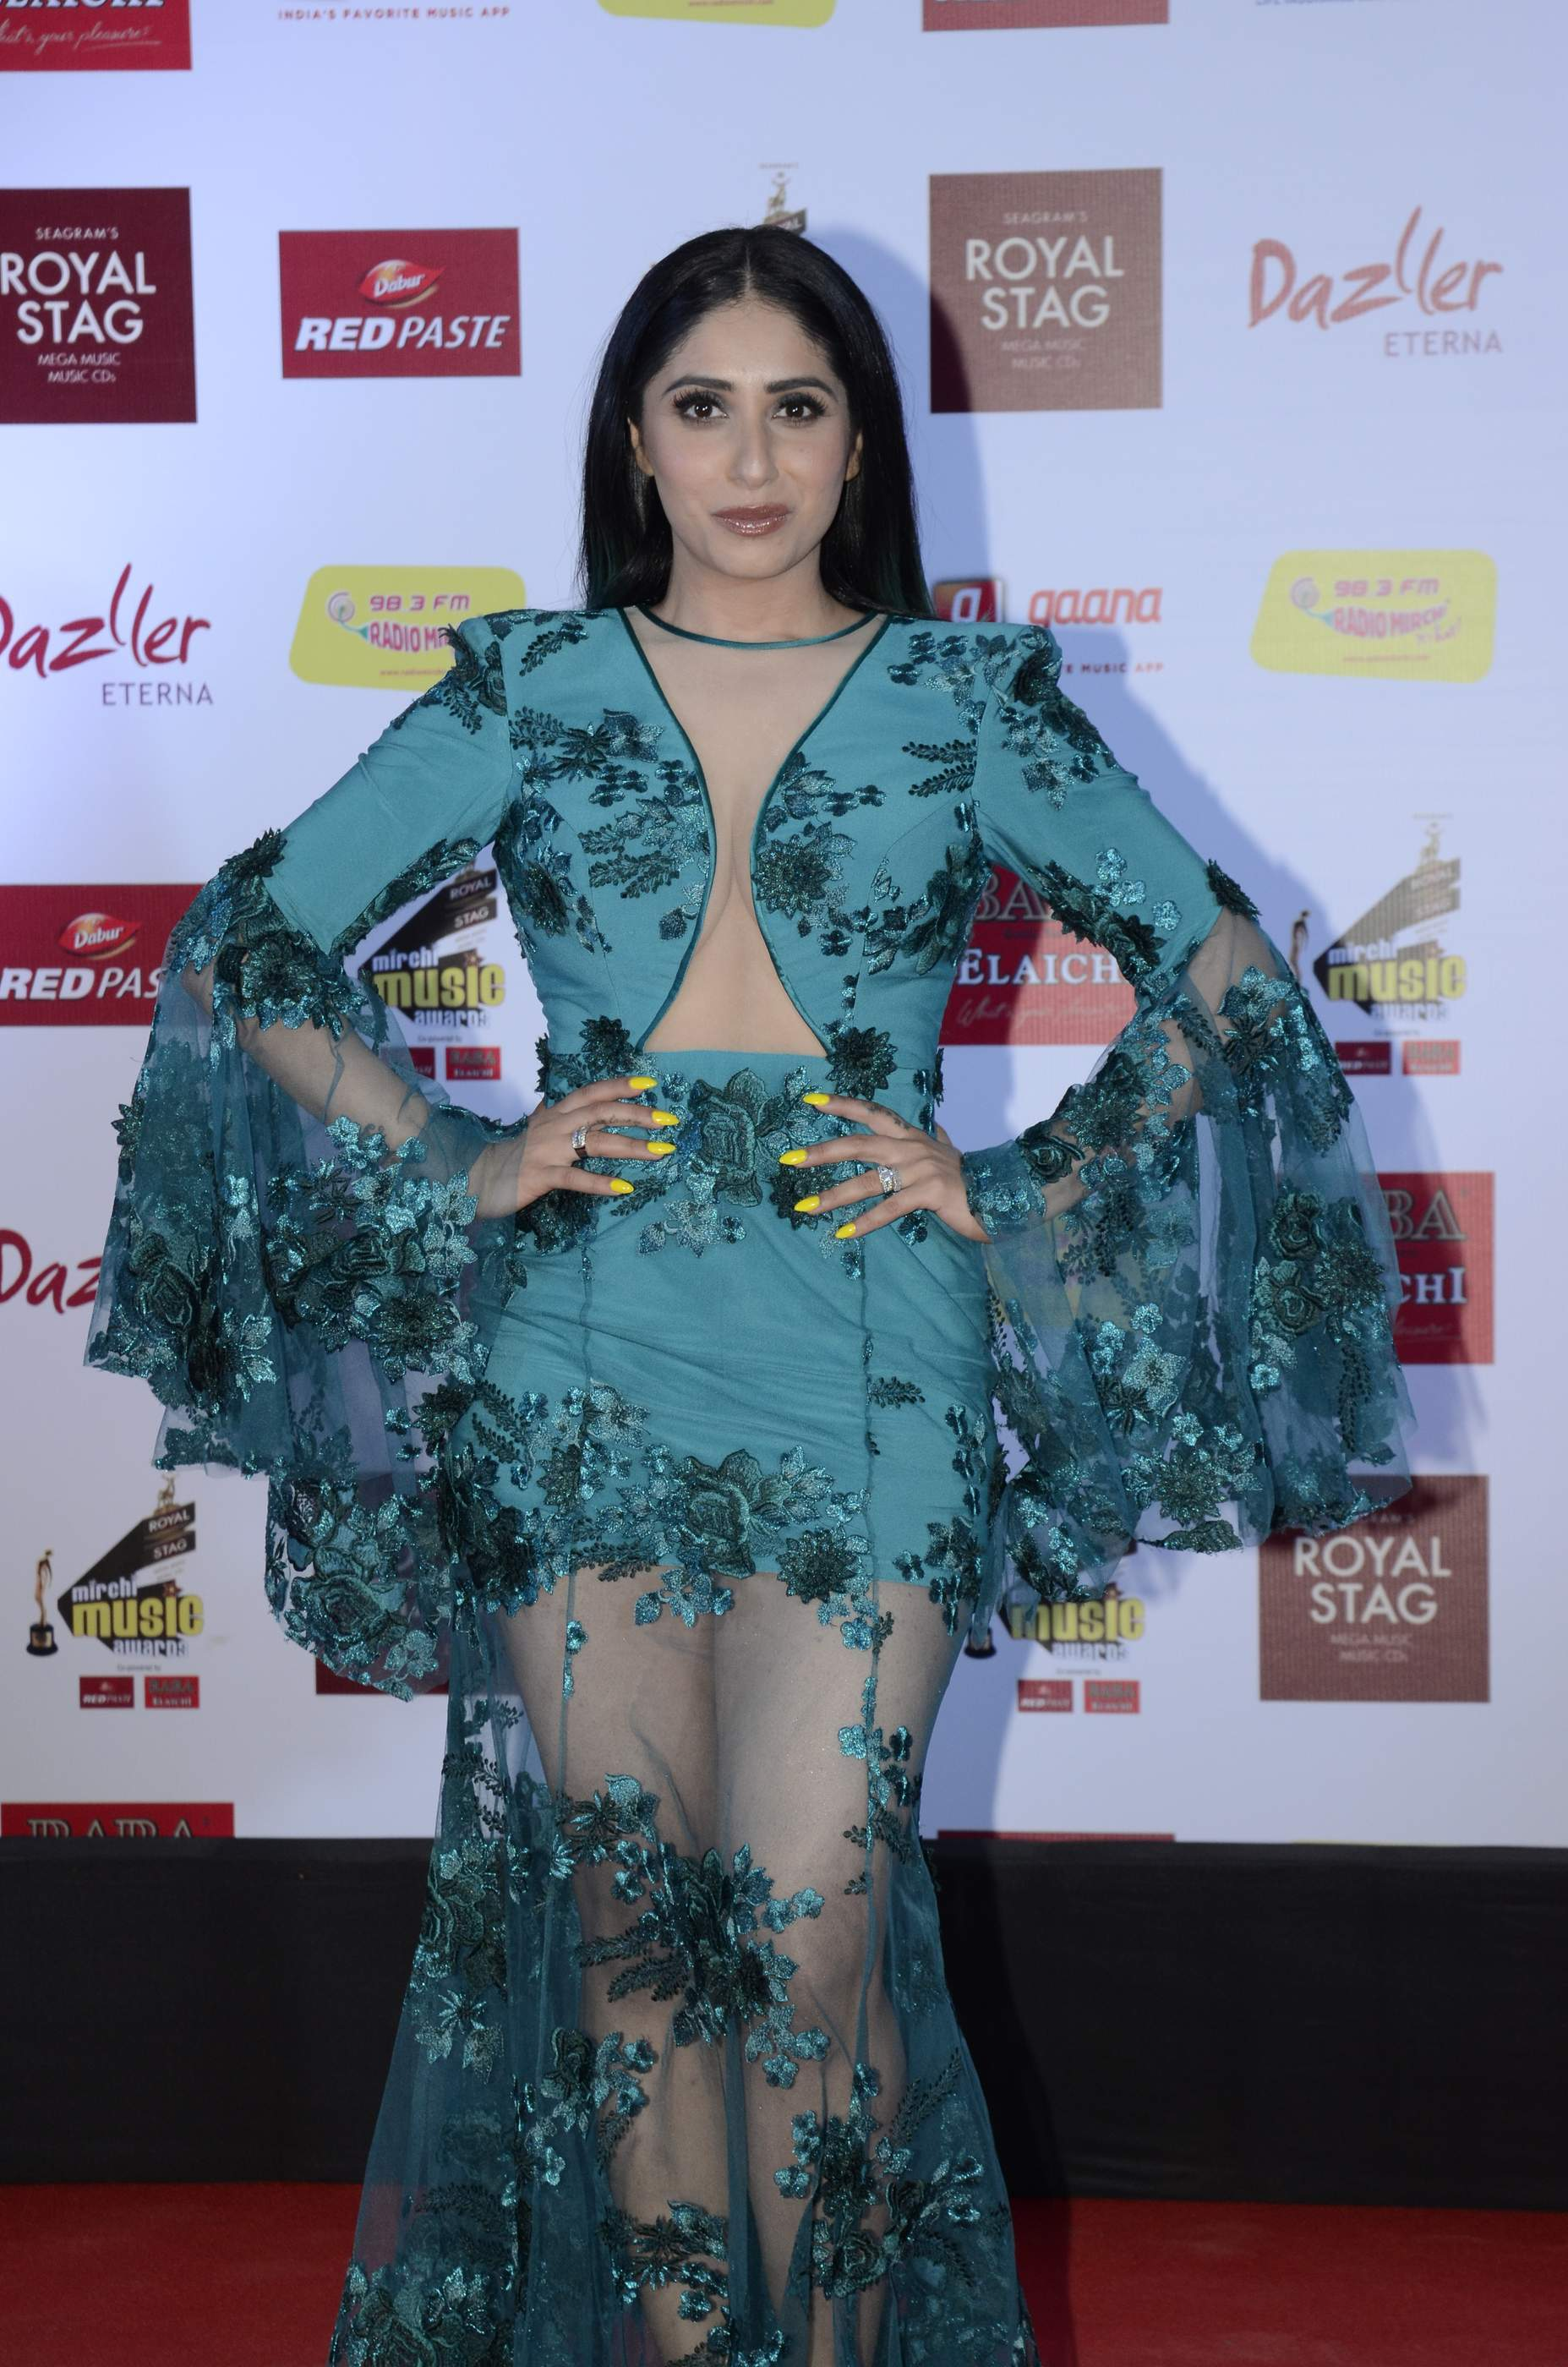 mirchi music HOT Celebs Dazzle At Mirchi Music Awards Event | Models | Actresses Radio Mirchi Awards Red Carpet 4